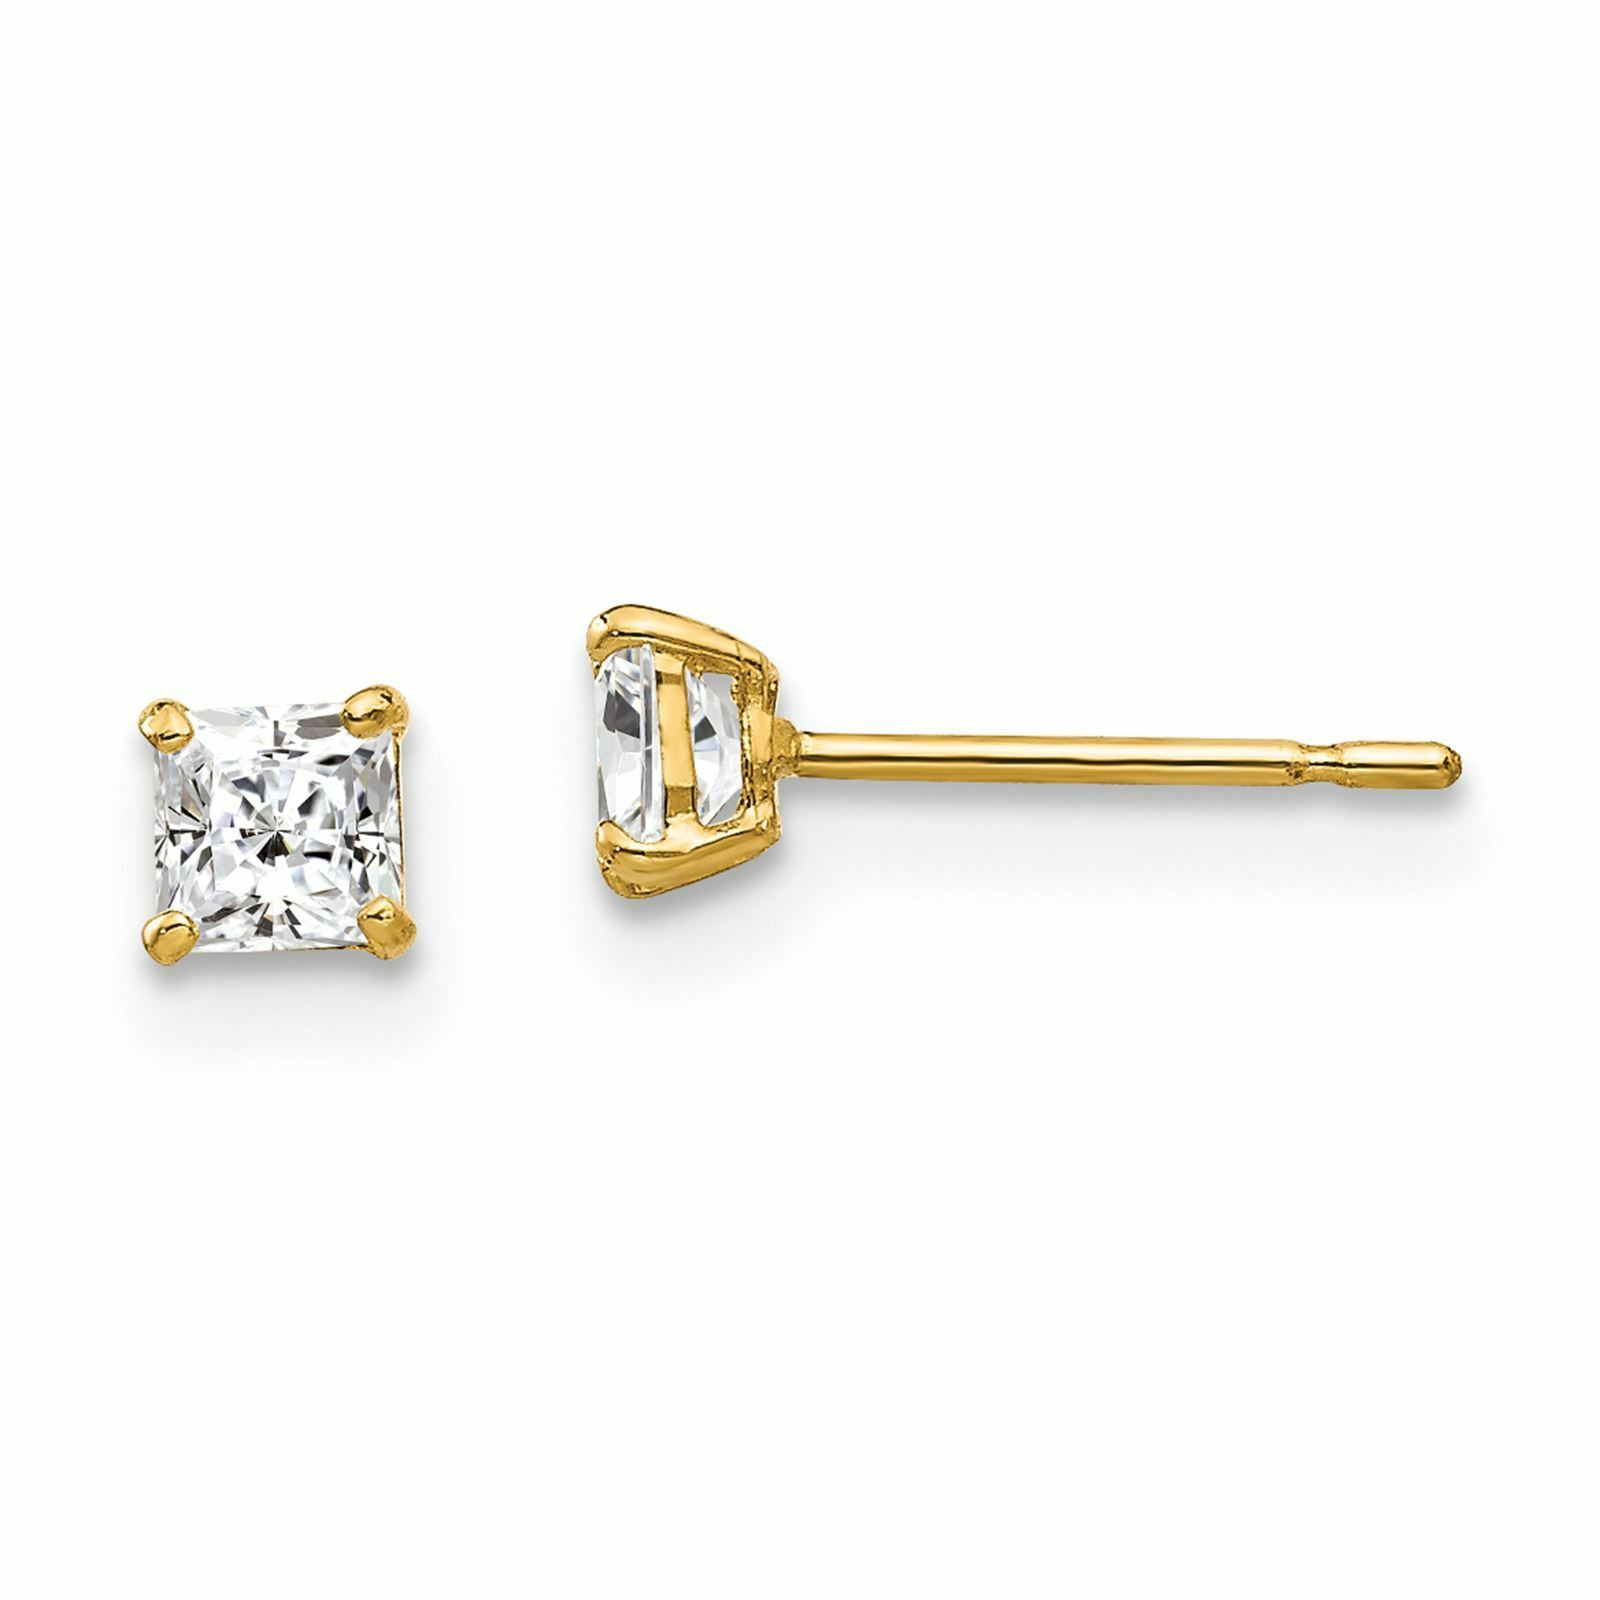 NEW Mens and Ladies 14k Yellow Gold Polished 3mm Square CZ Post Stud Earrings